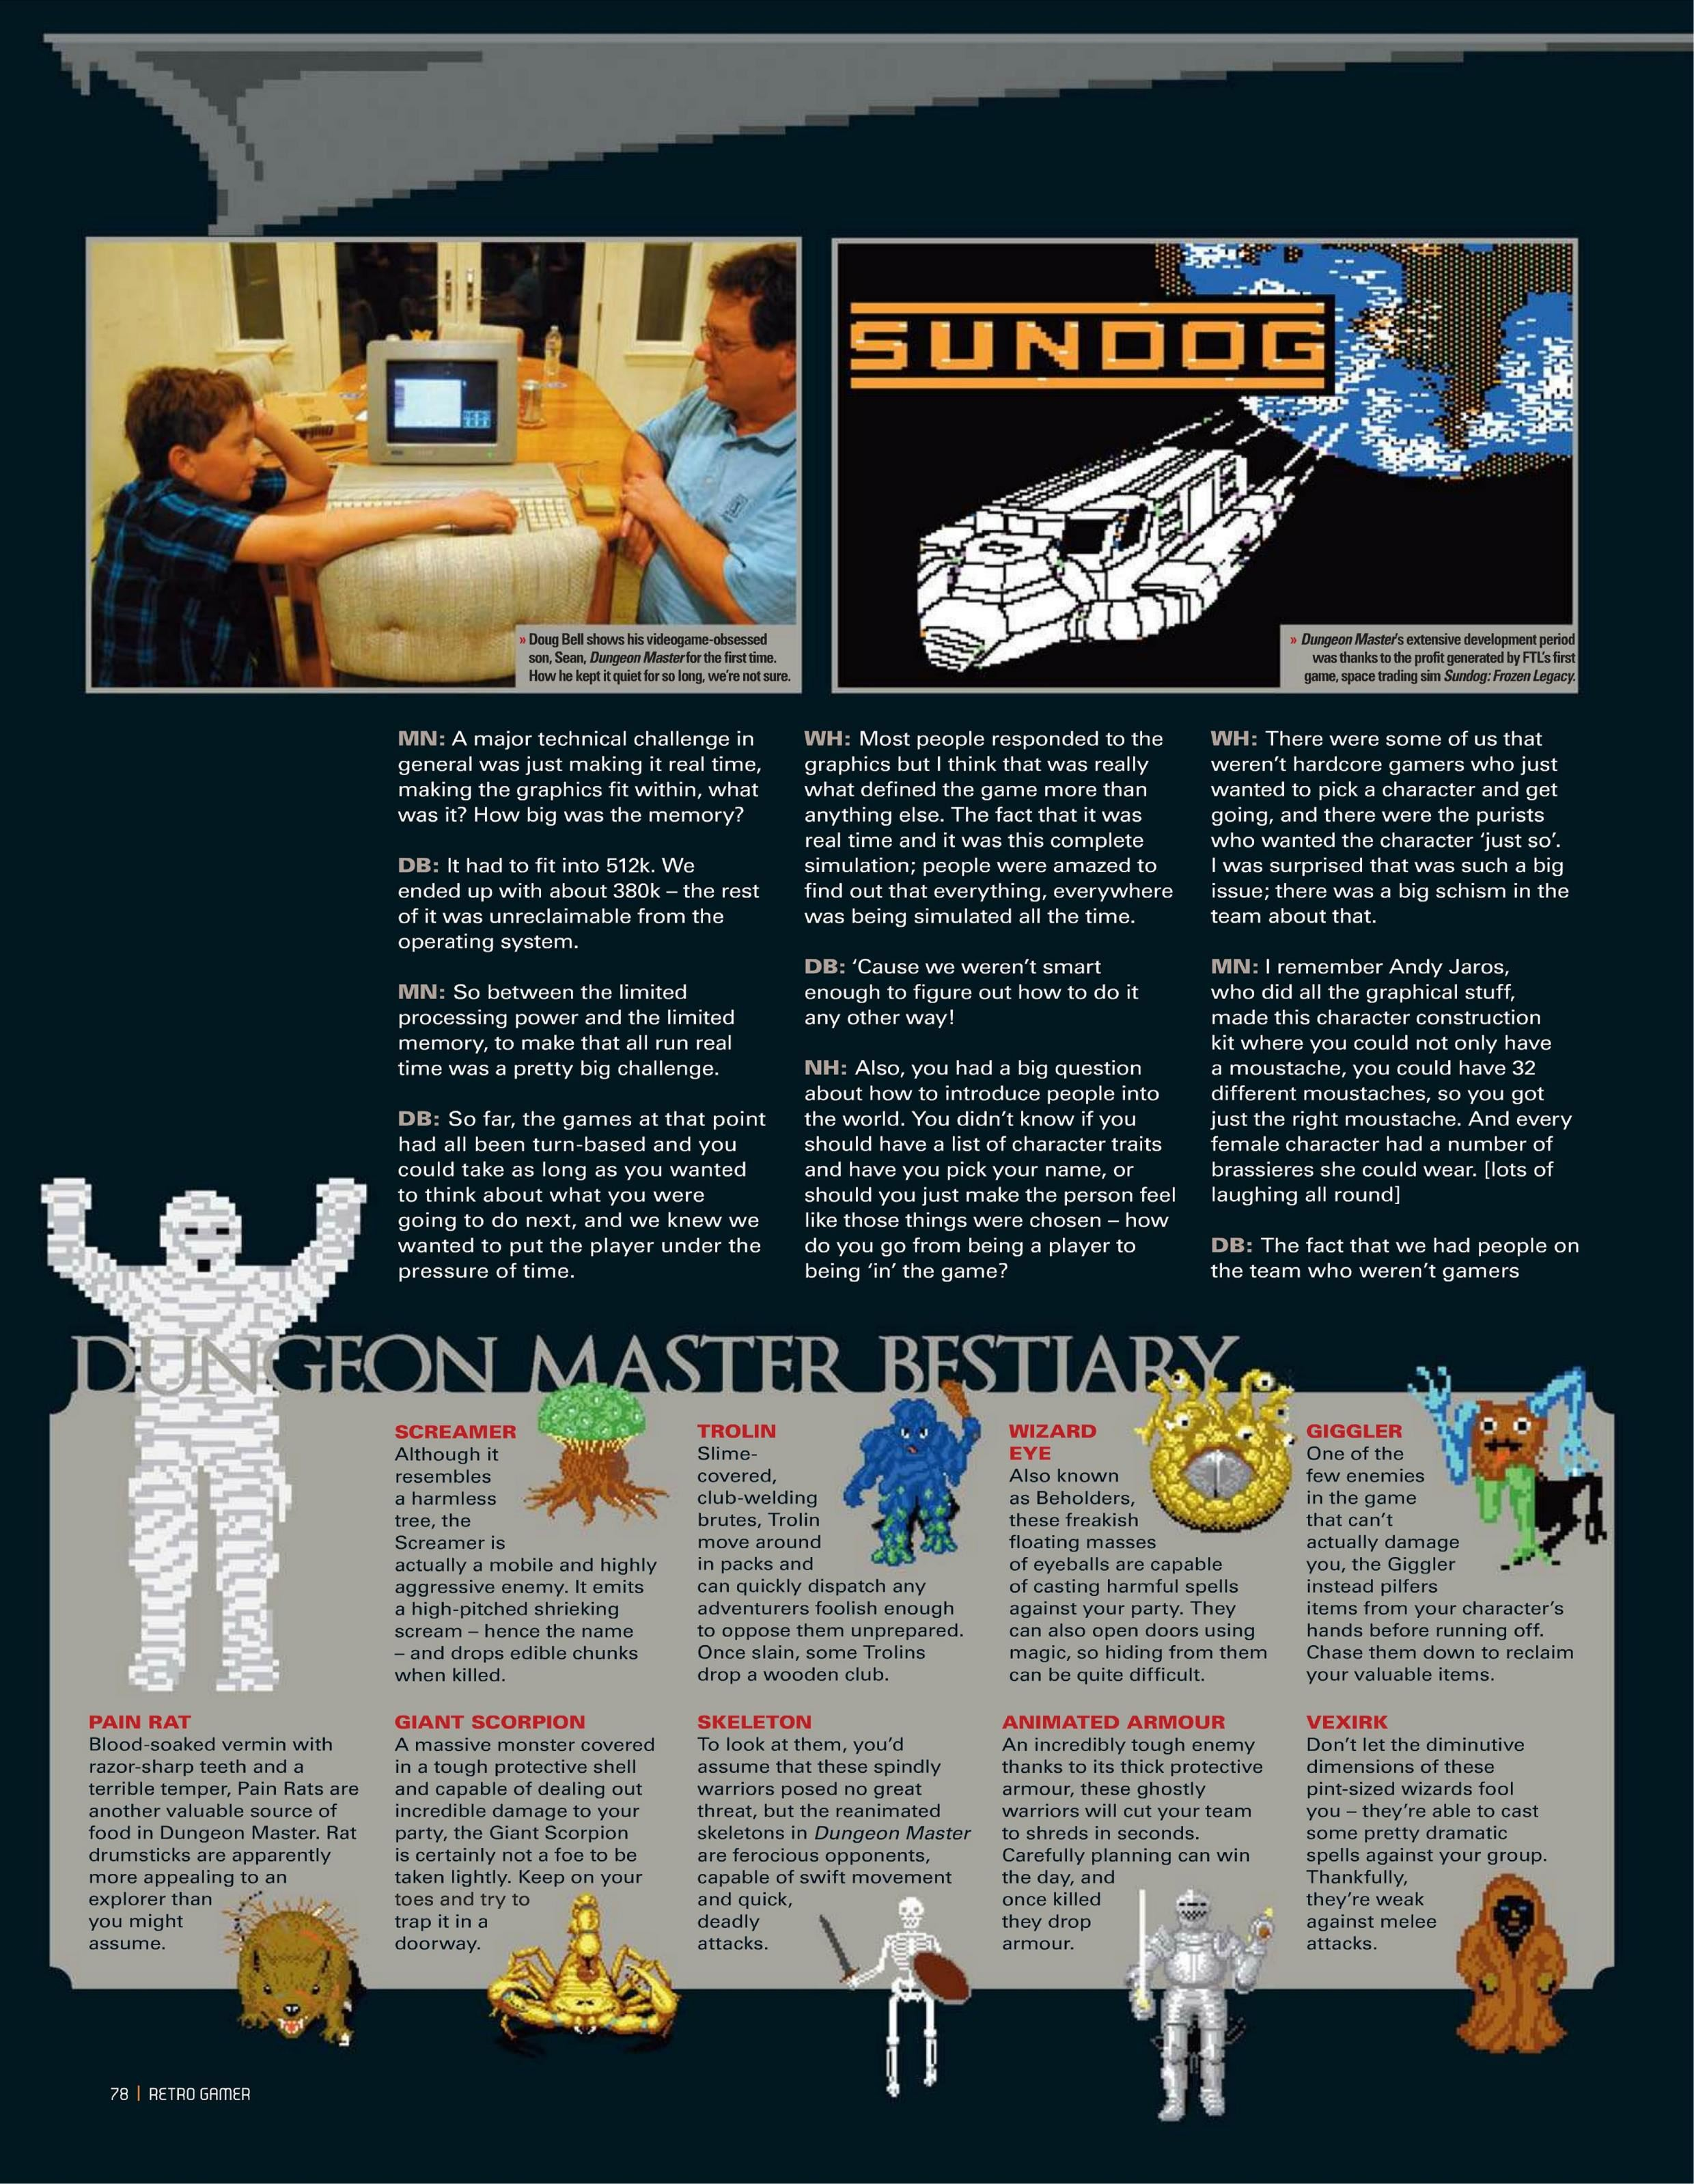 Dungeon Master Game Series Article published in British magazine 'Retro Gamer', Issue #105 July 2012, Page 78